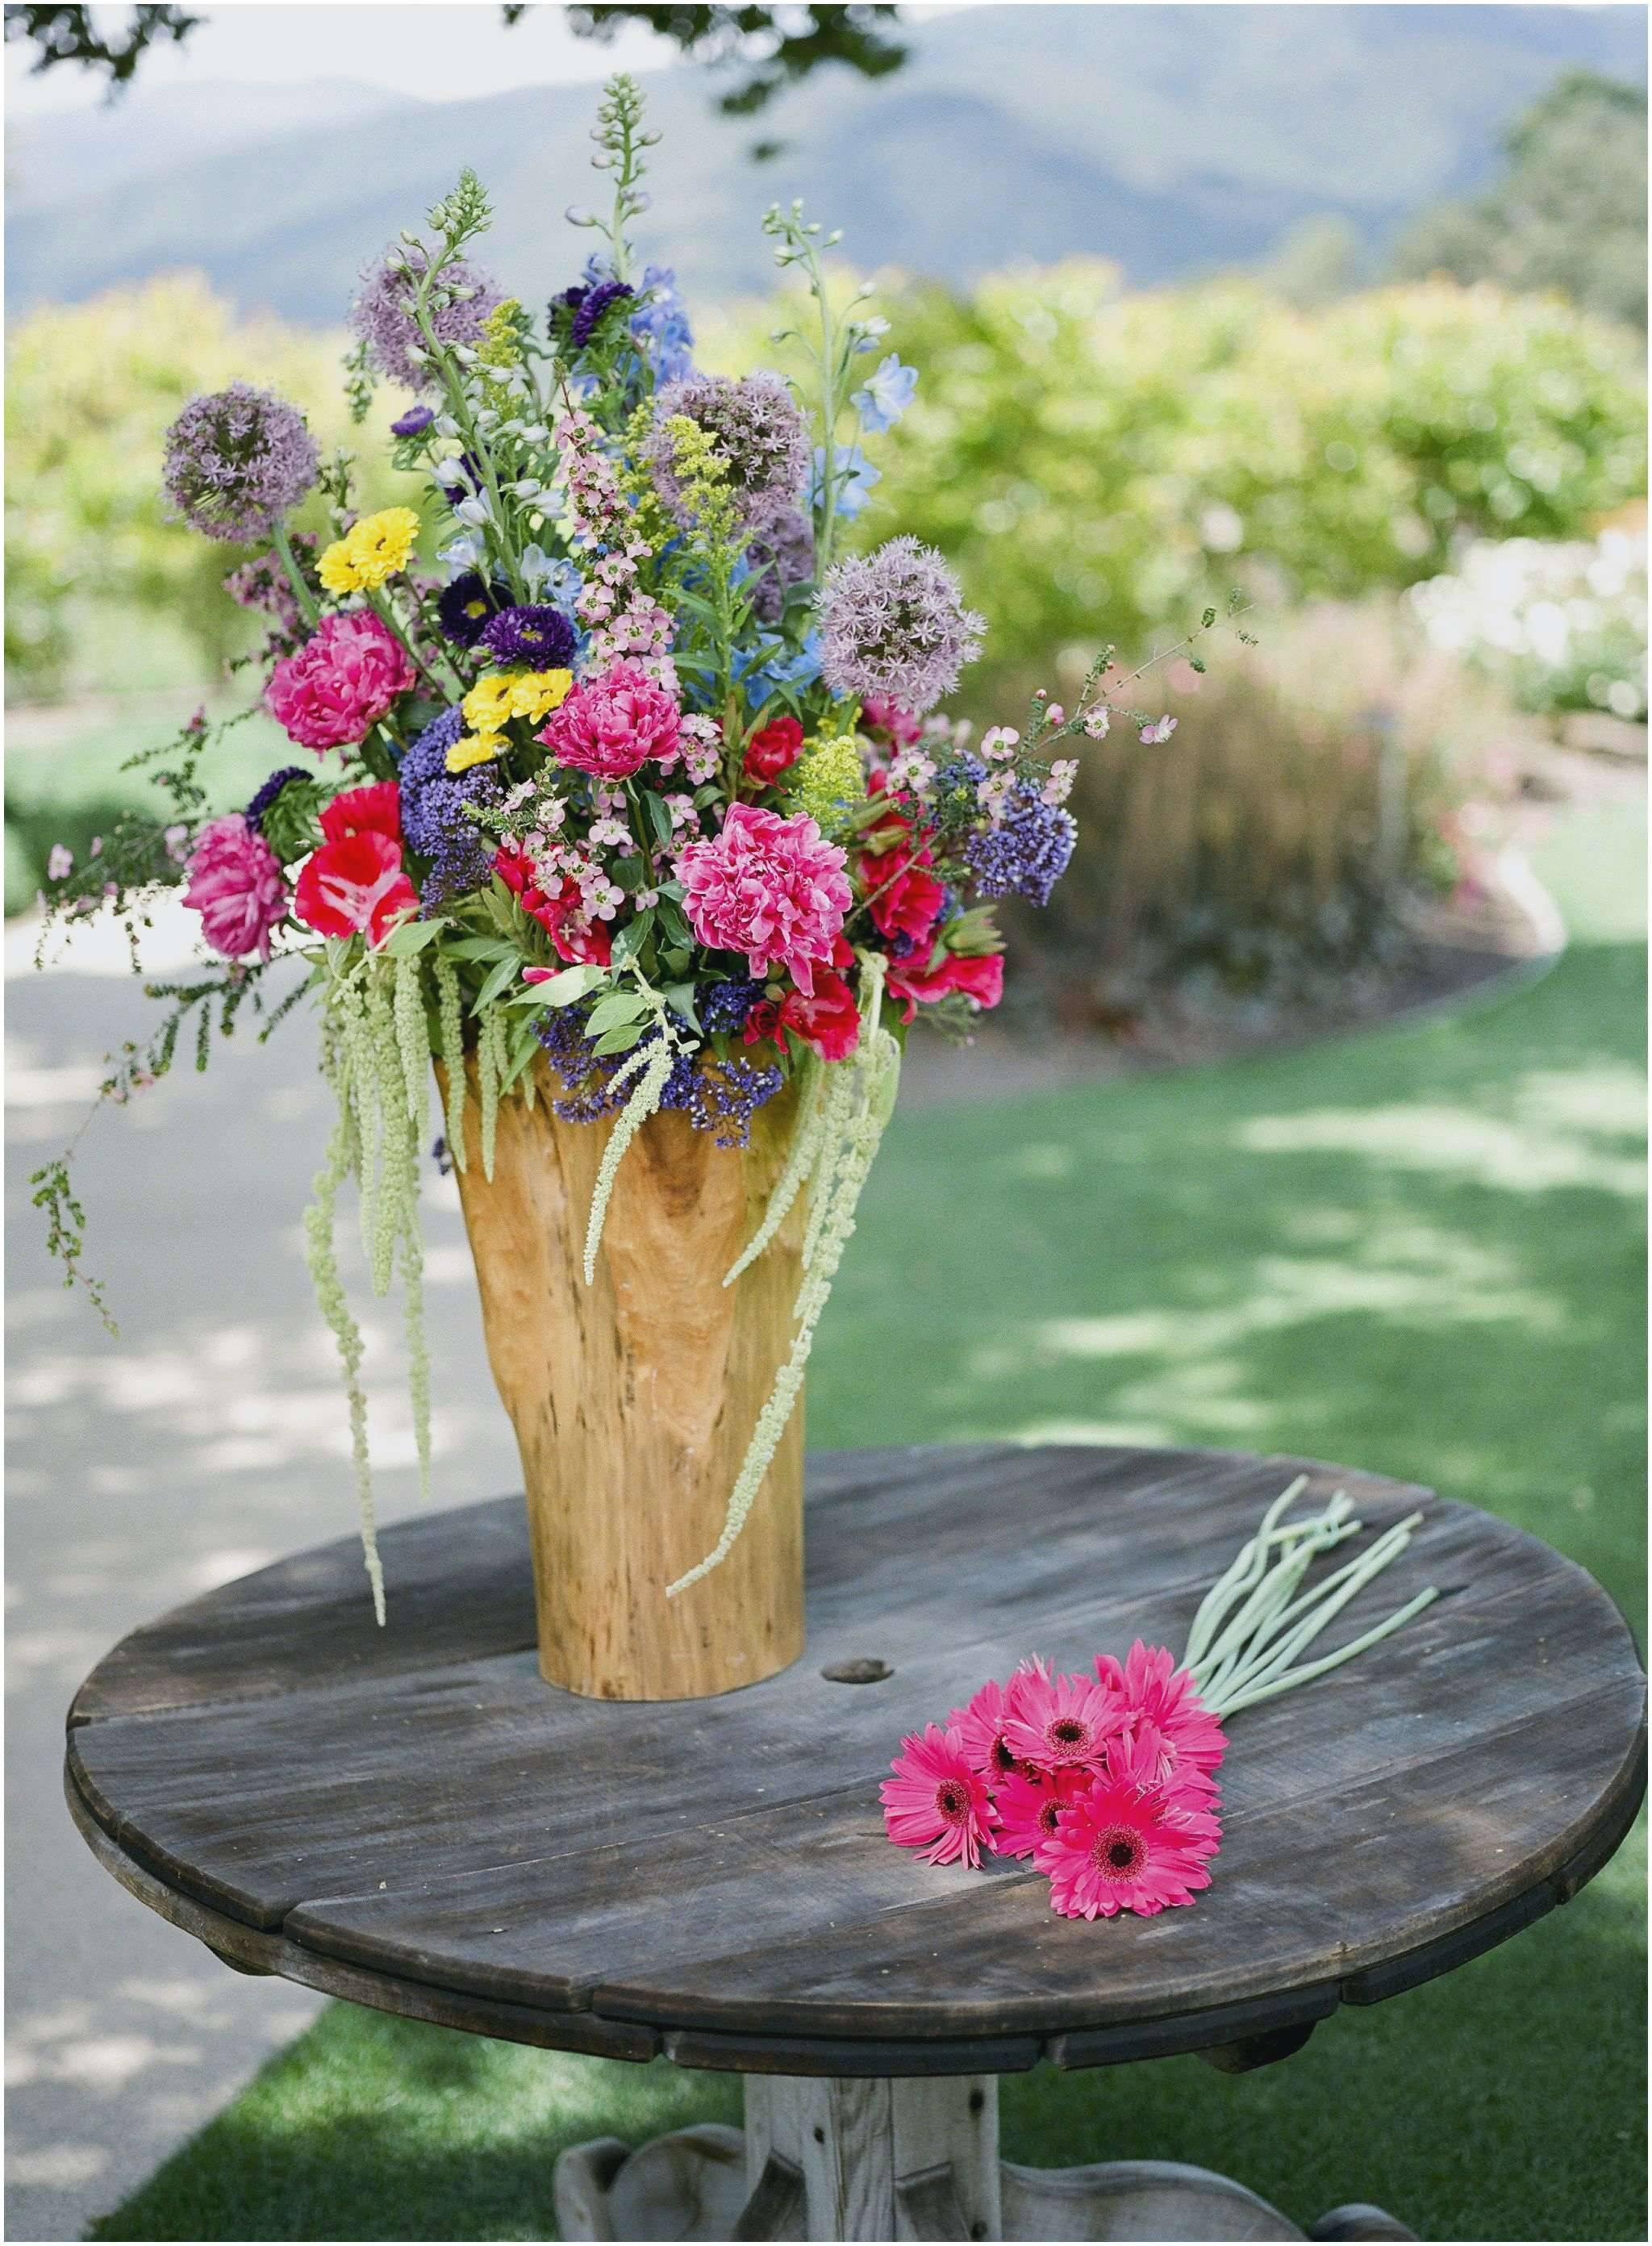 flower vase garden of images of gardens the perfect garden coloring pages vases flower for images of gardens updating your flowers for flower beds hd 0d christinecater flowers gardens of